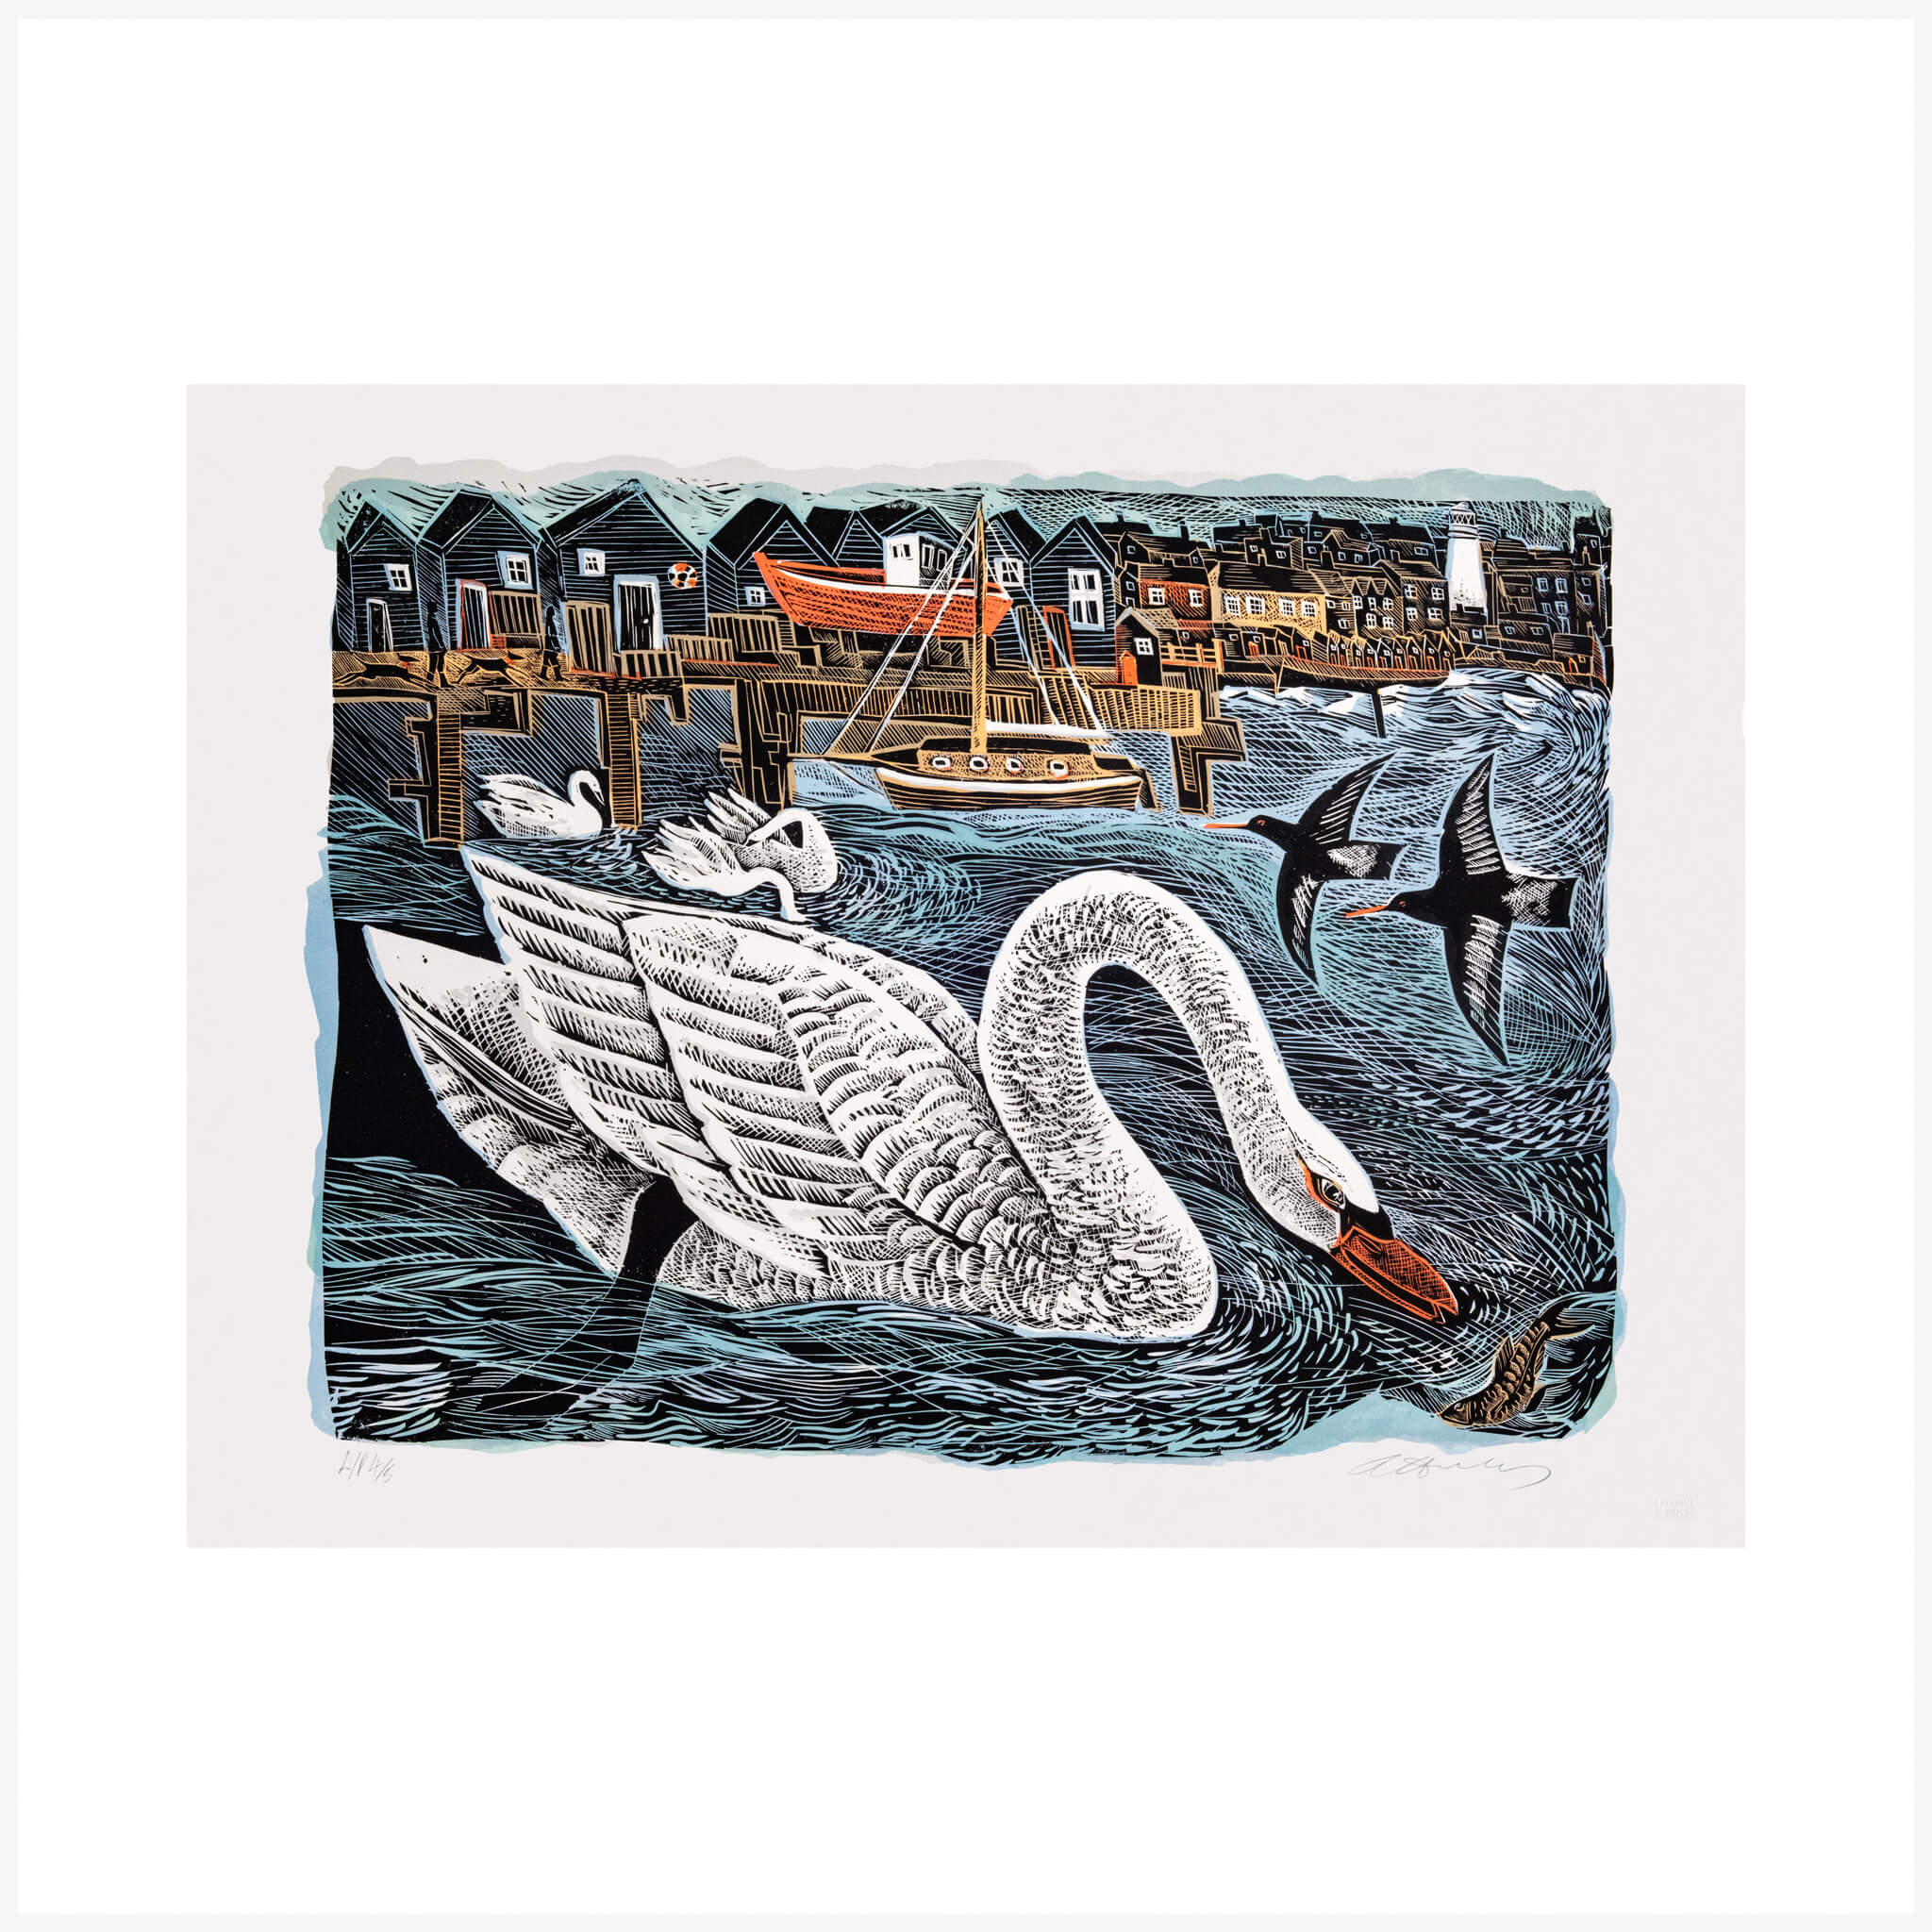 Southwold Swan Penfold Press Print by Angela Harding